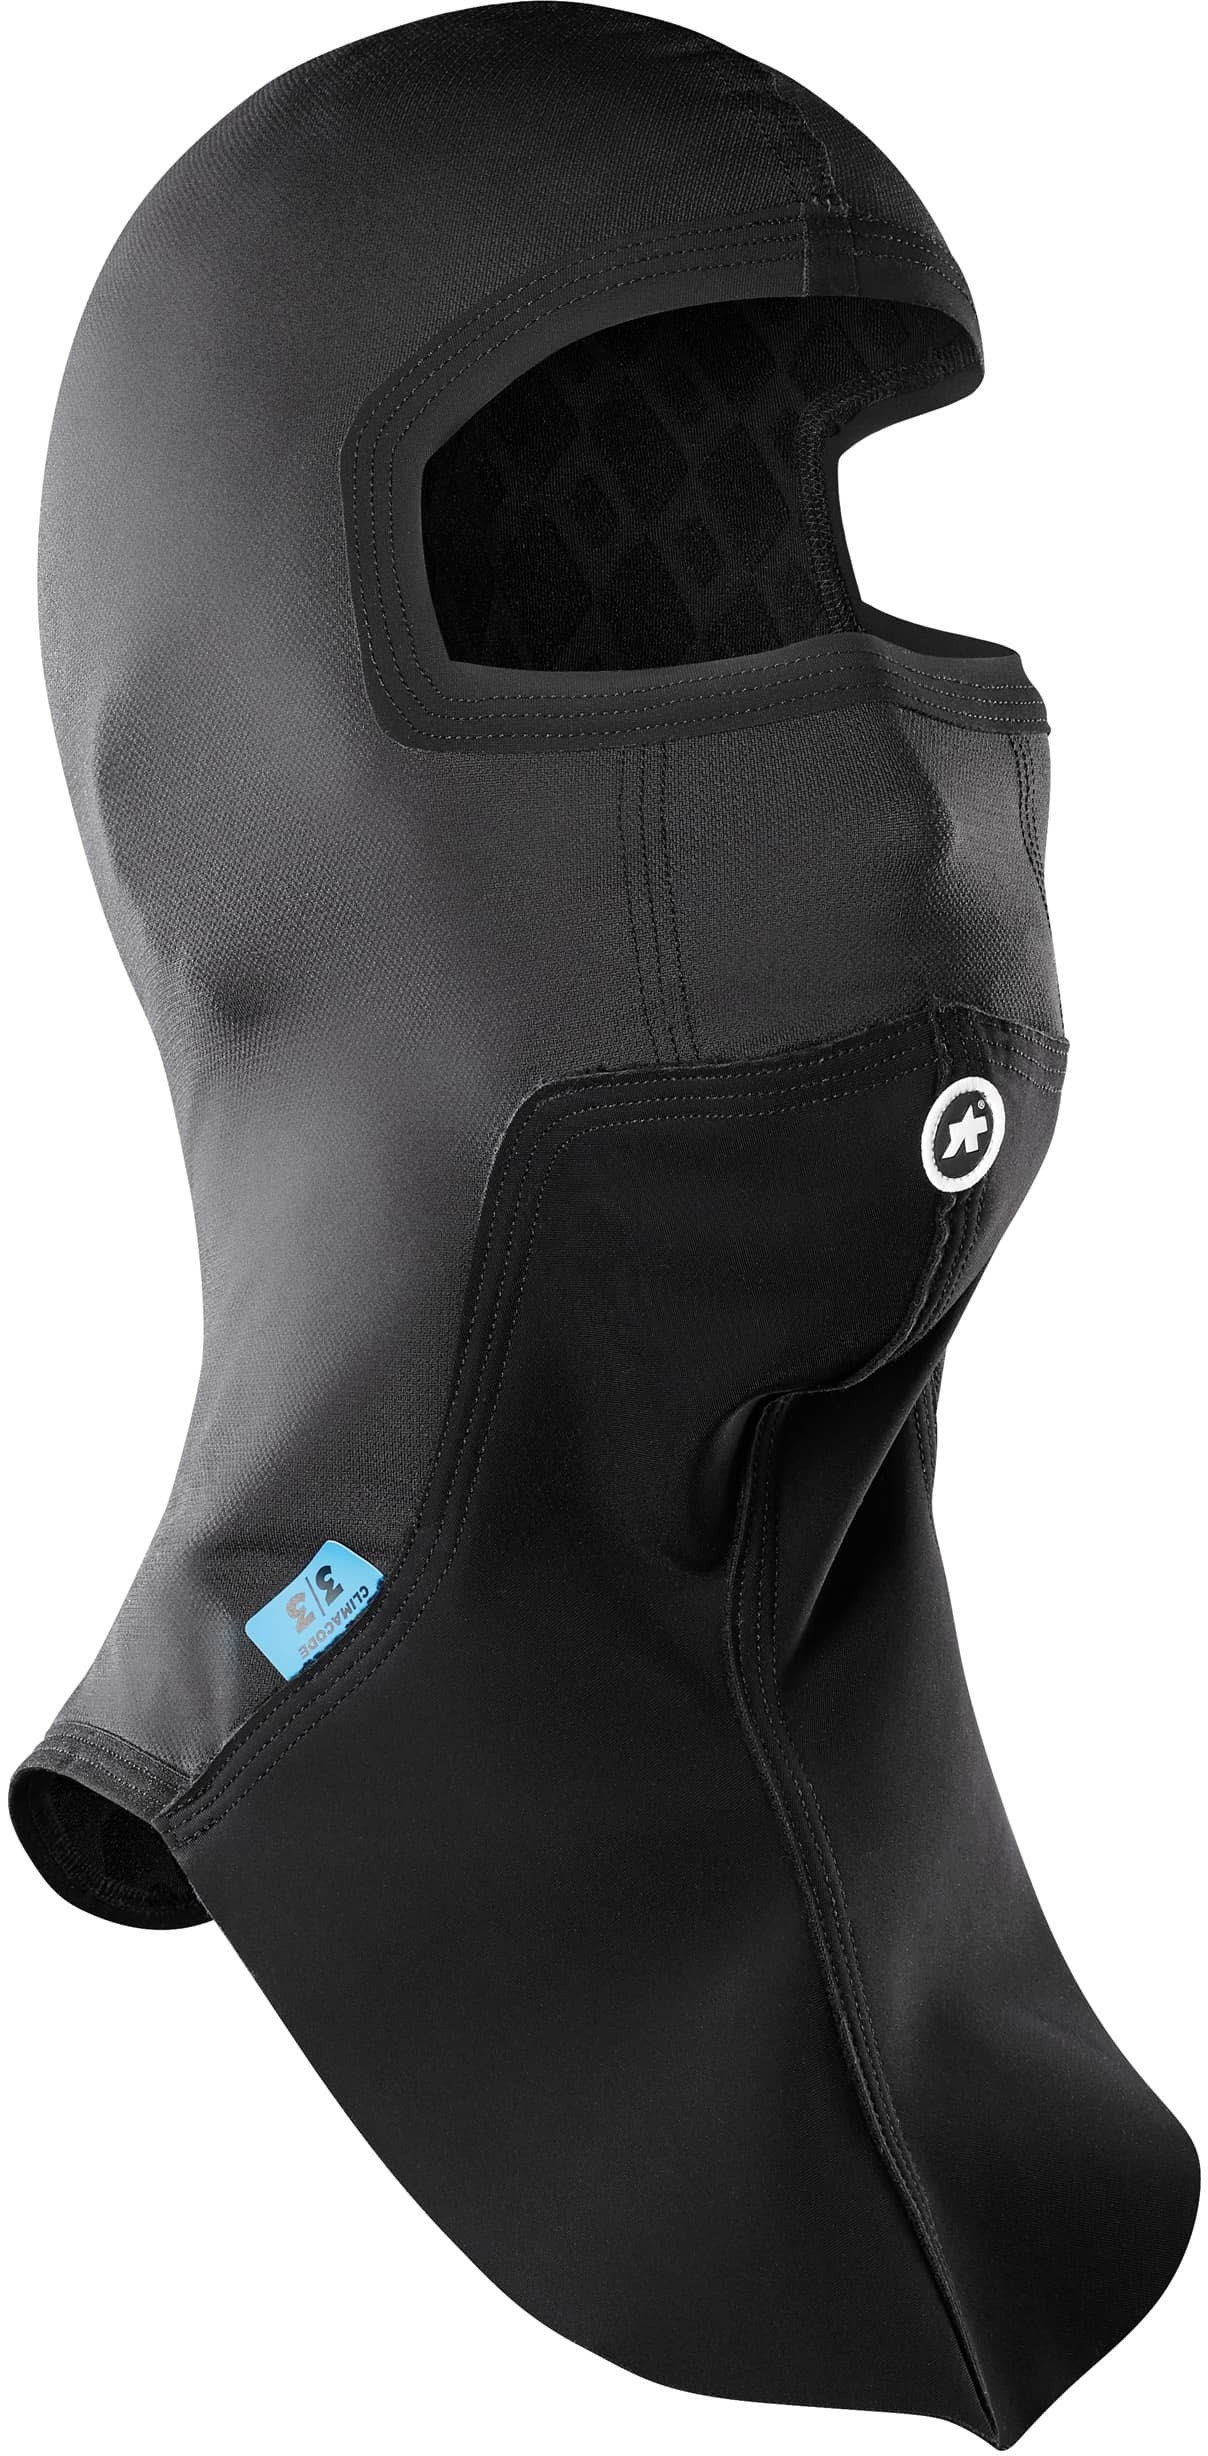 Assos Ultraz Winter Face Mask